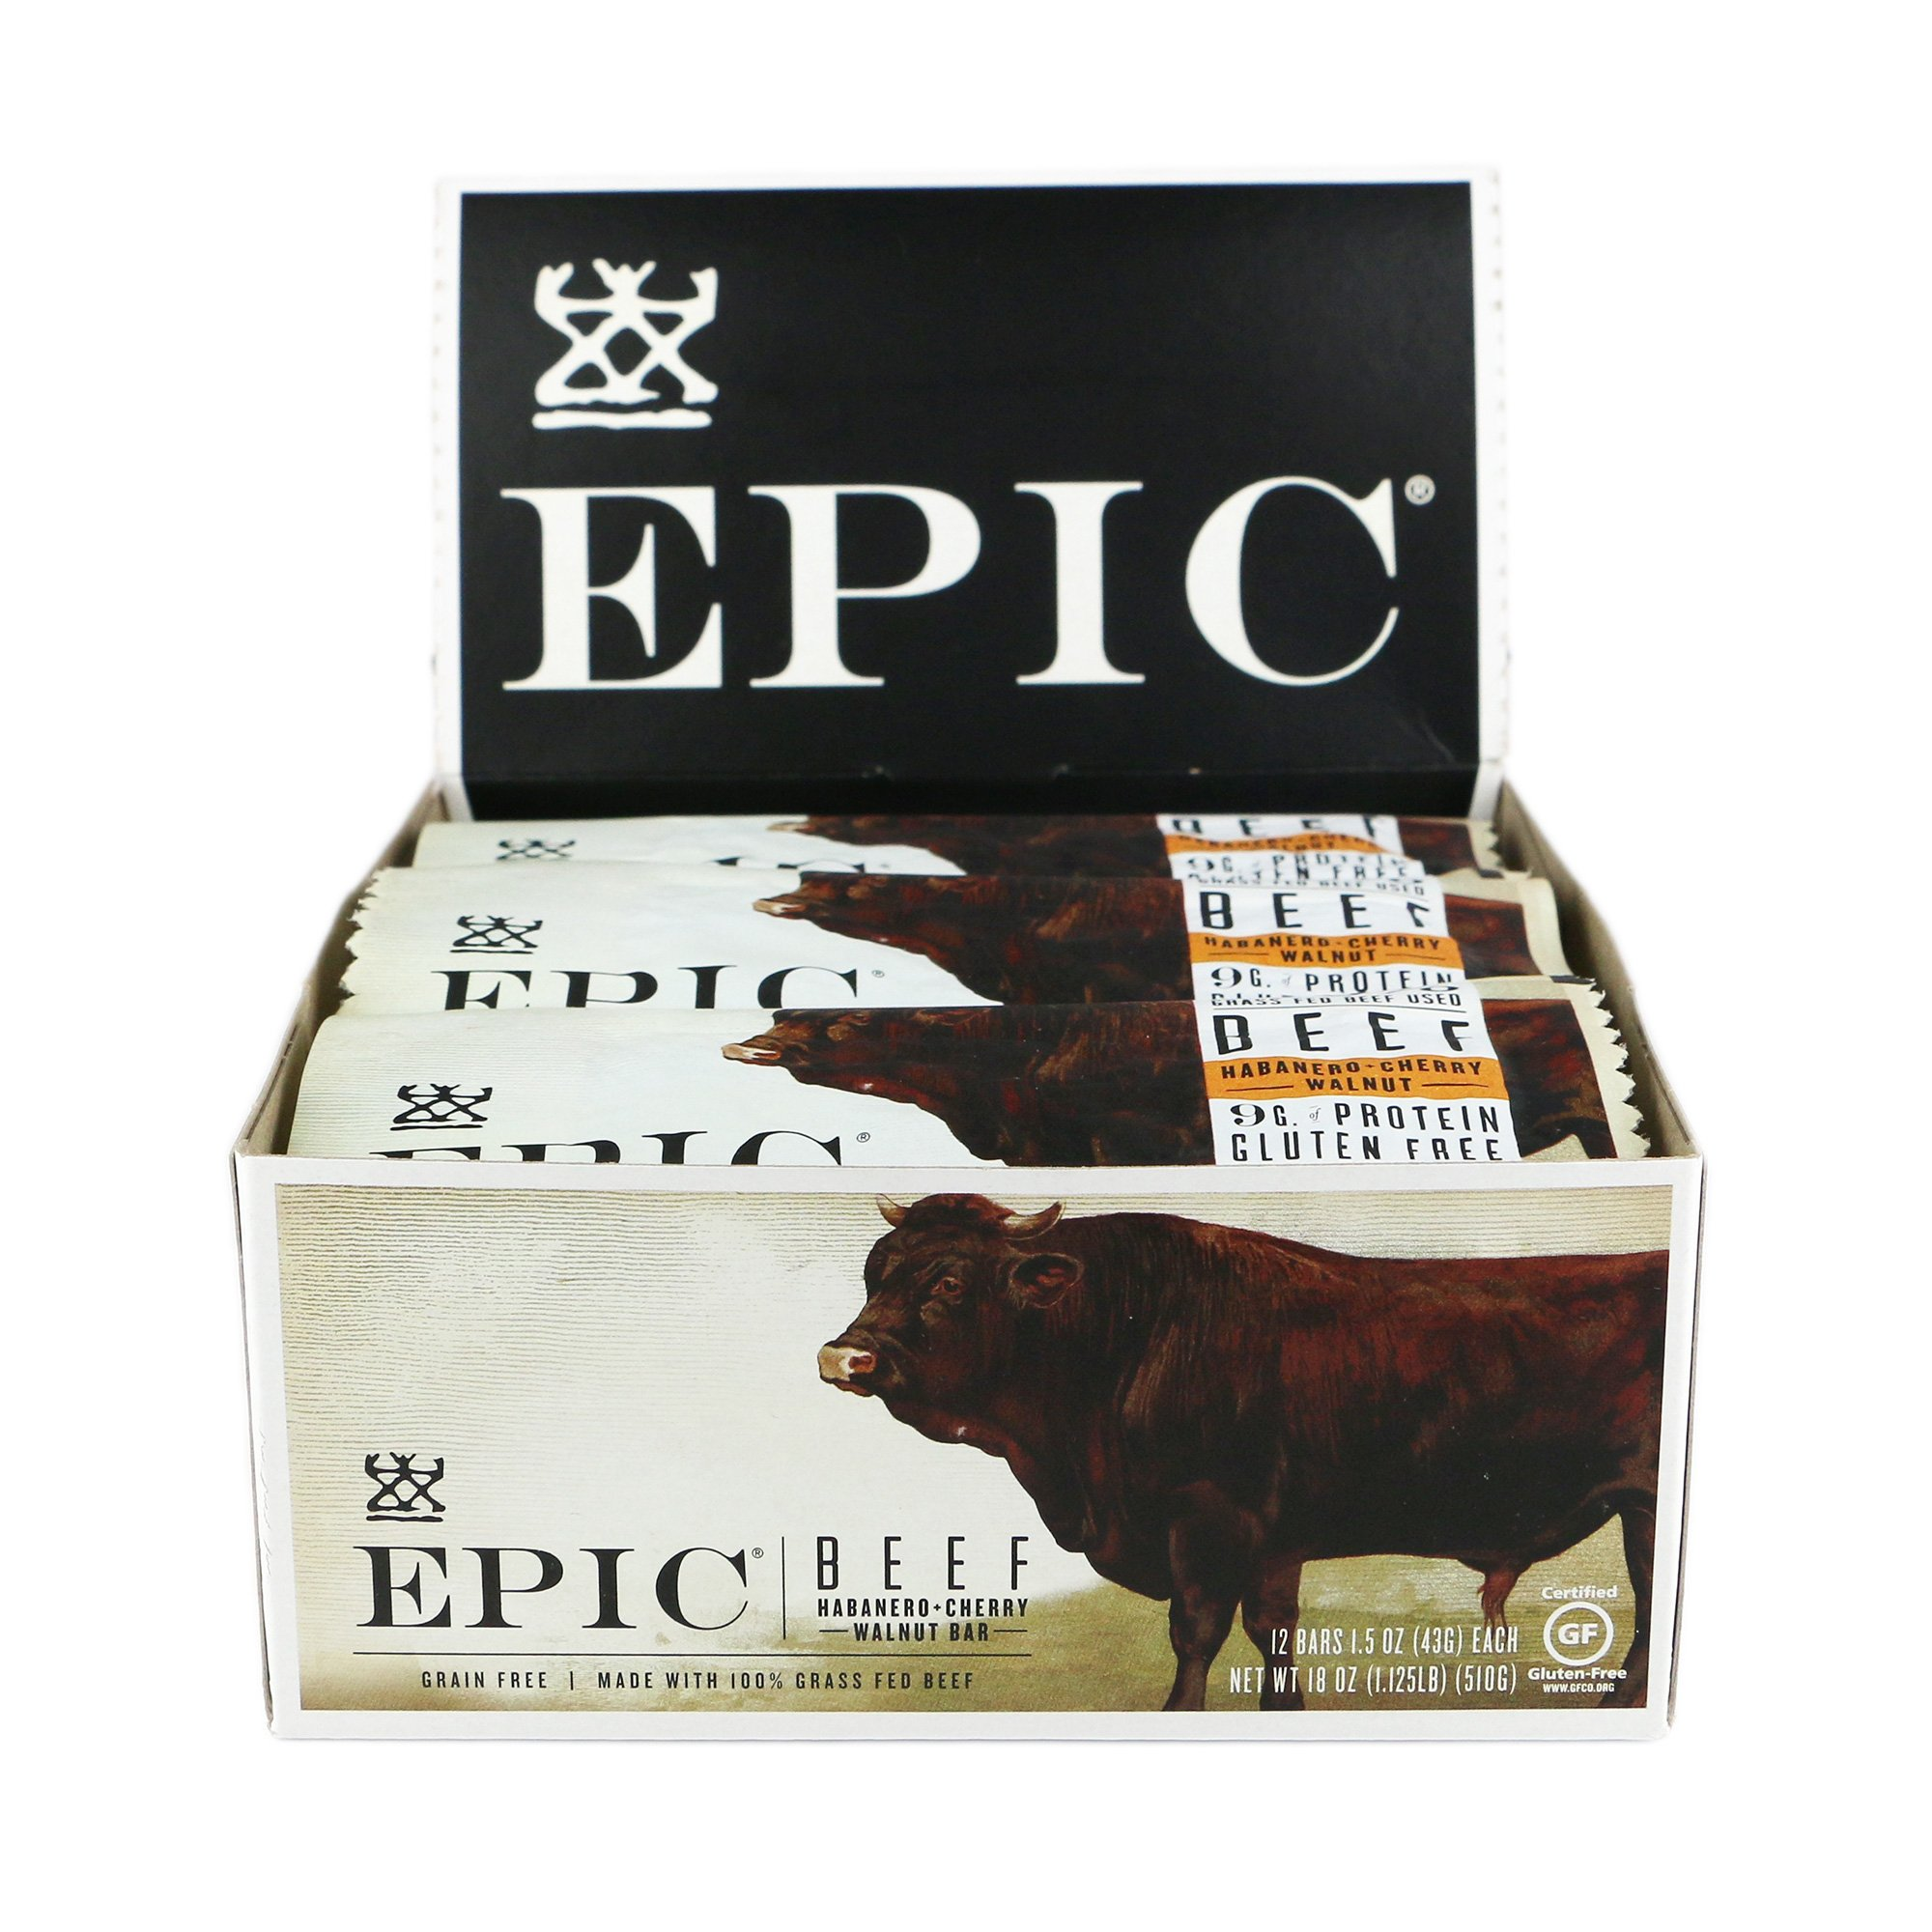 Epic All Natural Meat Bar, 100% Grass Fed, Beef, Habanero & Cherry, 1.5 ounce bar